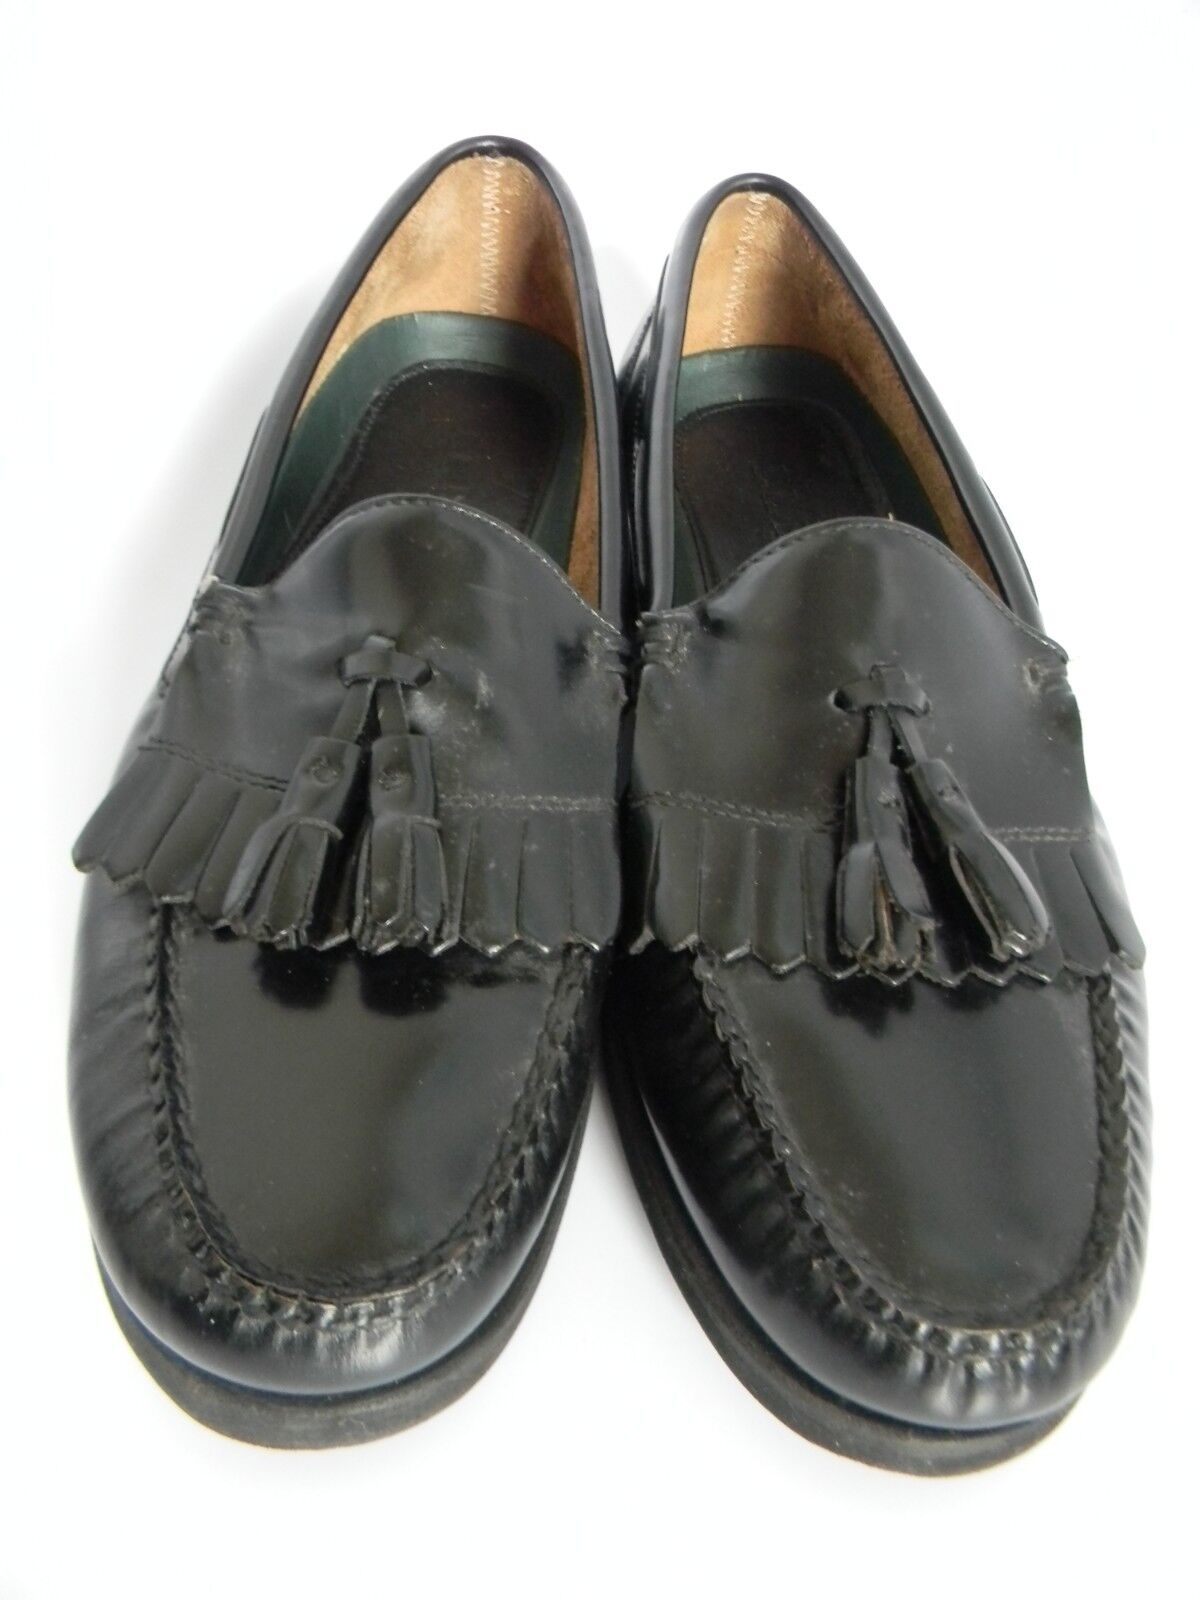 LL Bean Mens Black Tassel Loafers with Amazonas Rubber Soles Solanite Size 10.5N